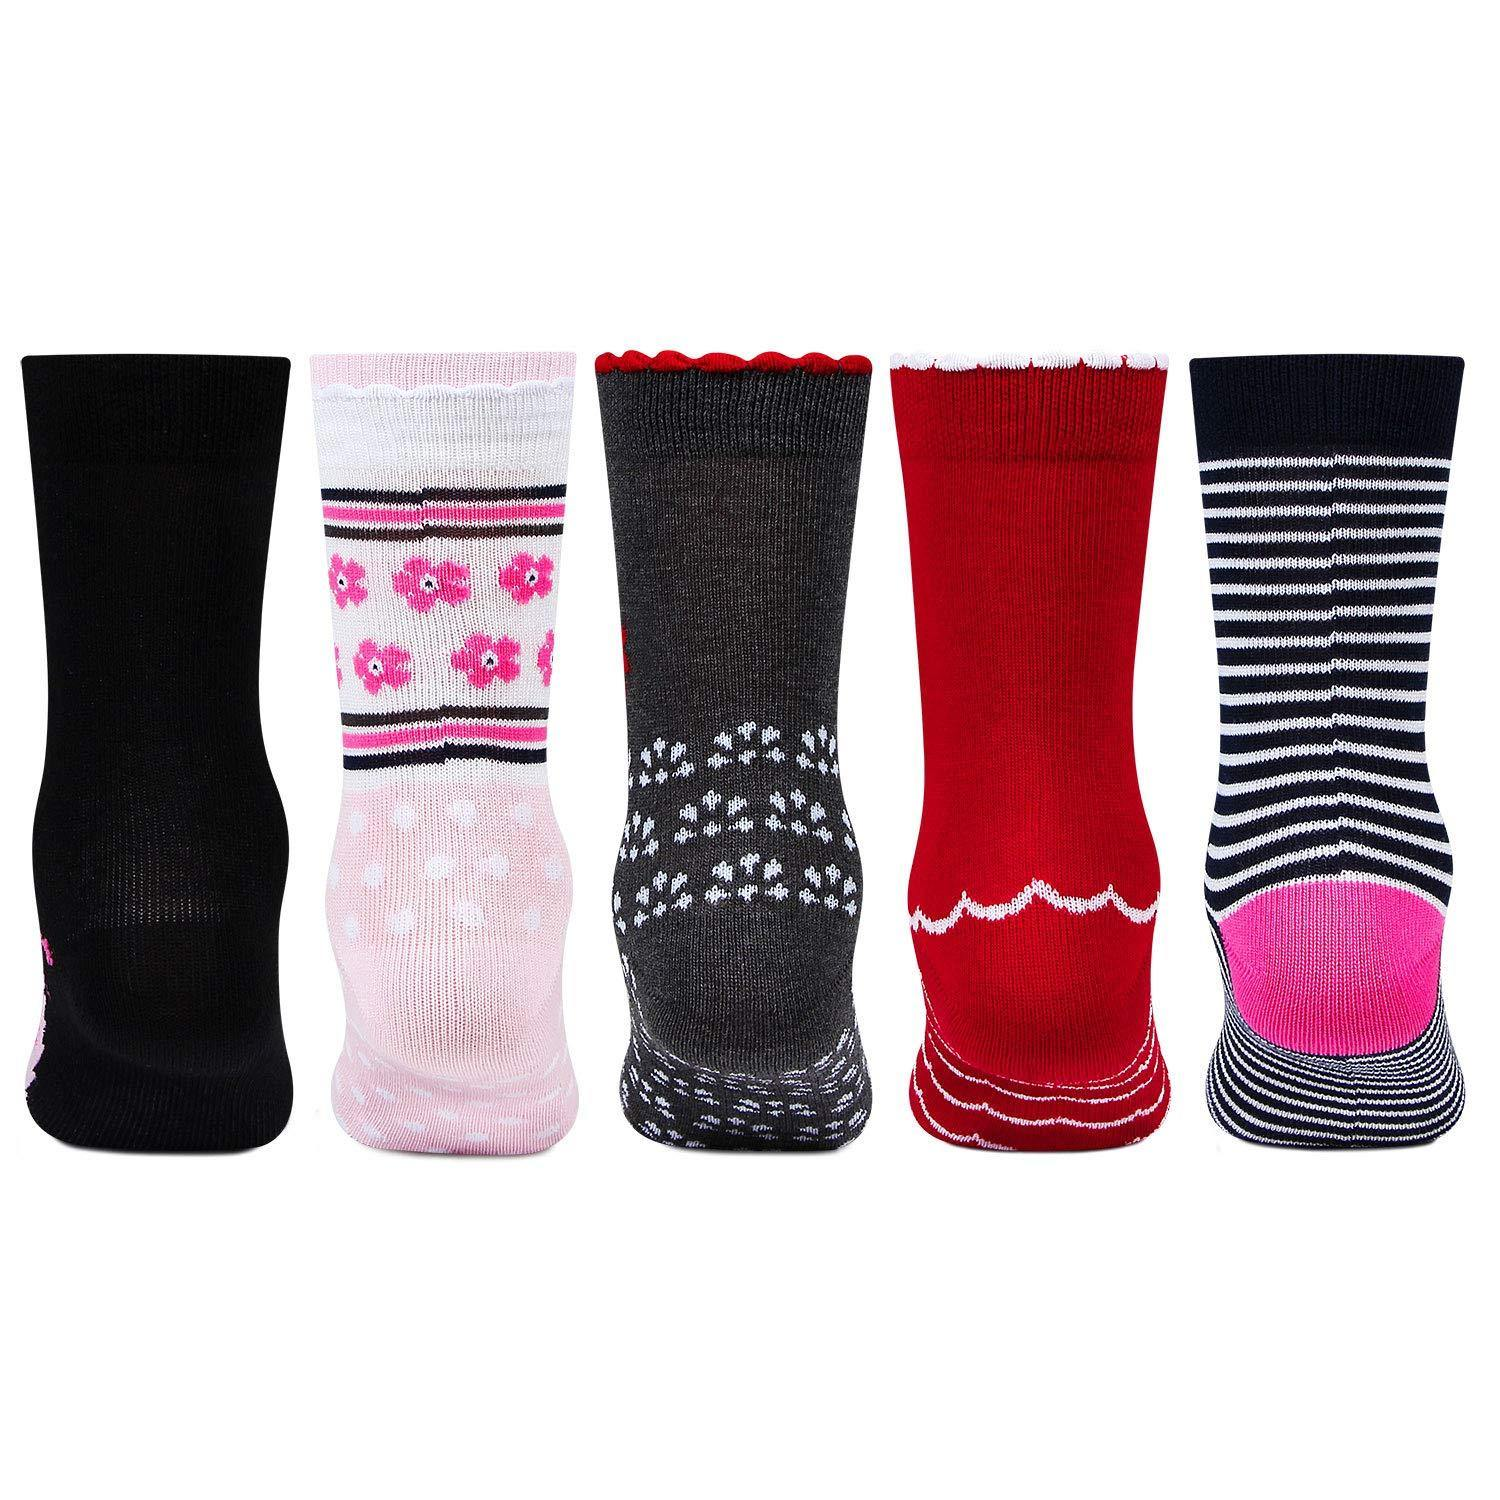 Girls Multi-color Fashion Socks - Pack Of 5